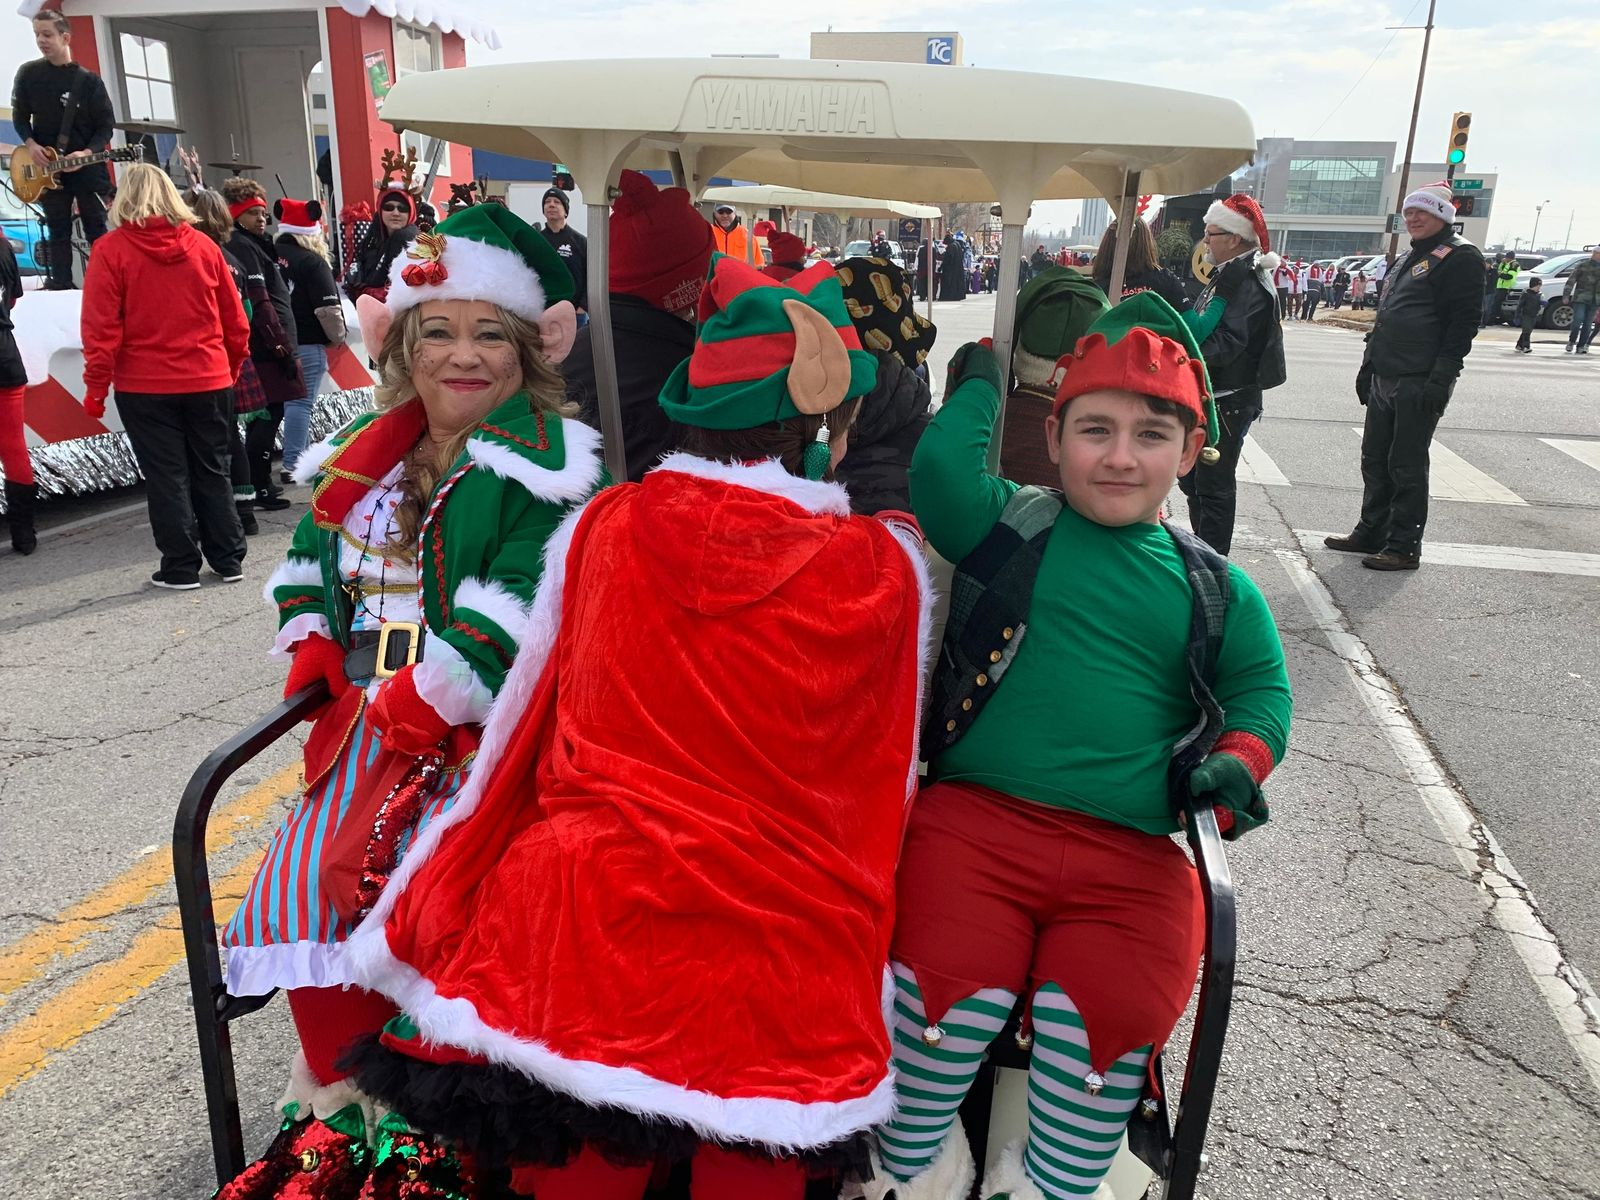 Channel 8 crew having a great time at the 93rd Annual Tulsa Christmas Parade Saturday, Dec. 14, 2019. (KTUL photo)